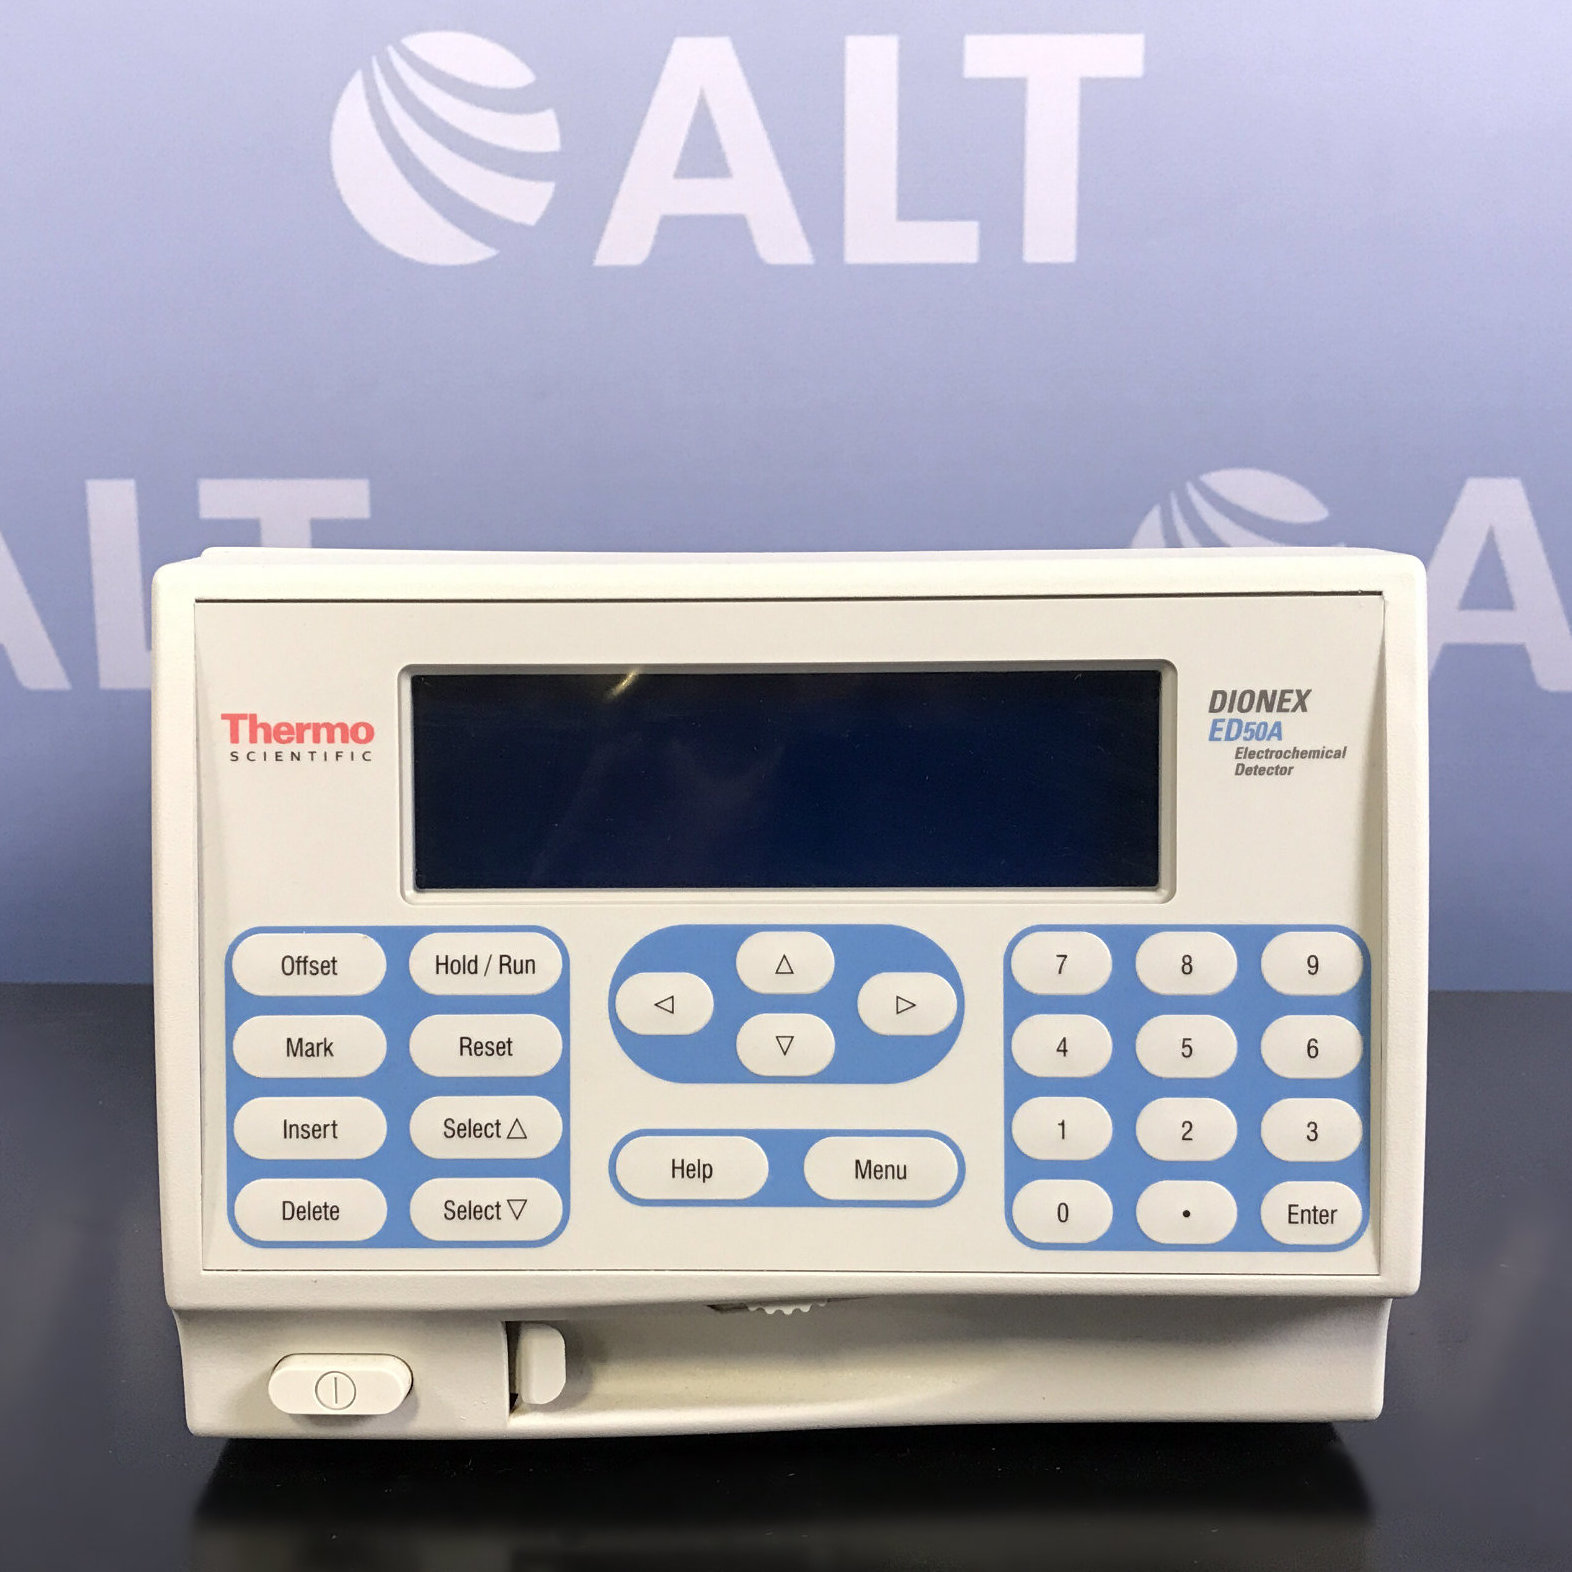 Thermo Scientific Dionex ED50A Electrochemical Detector Image